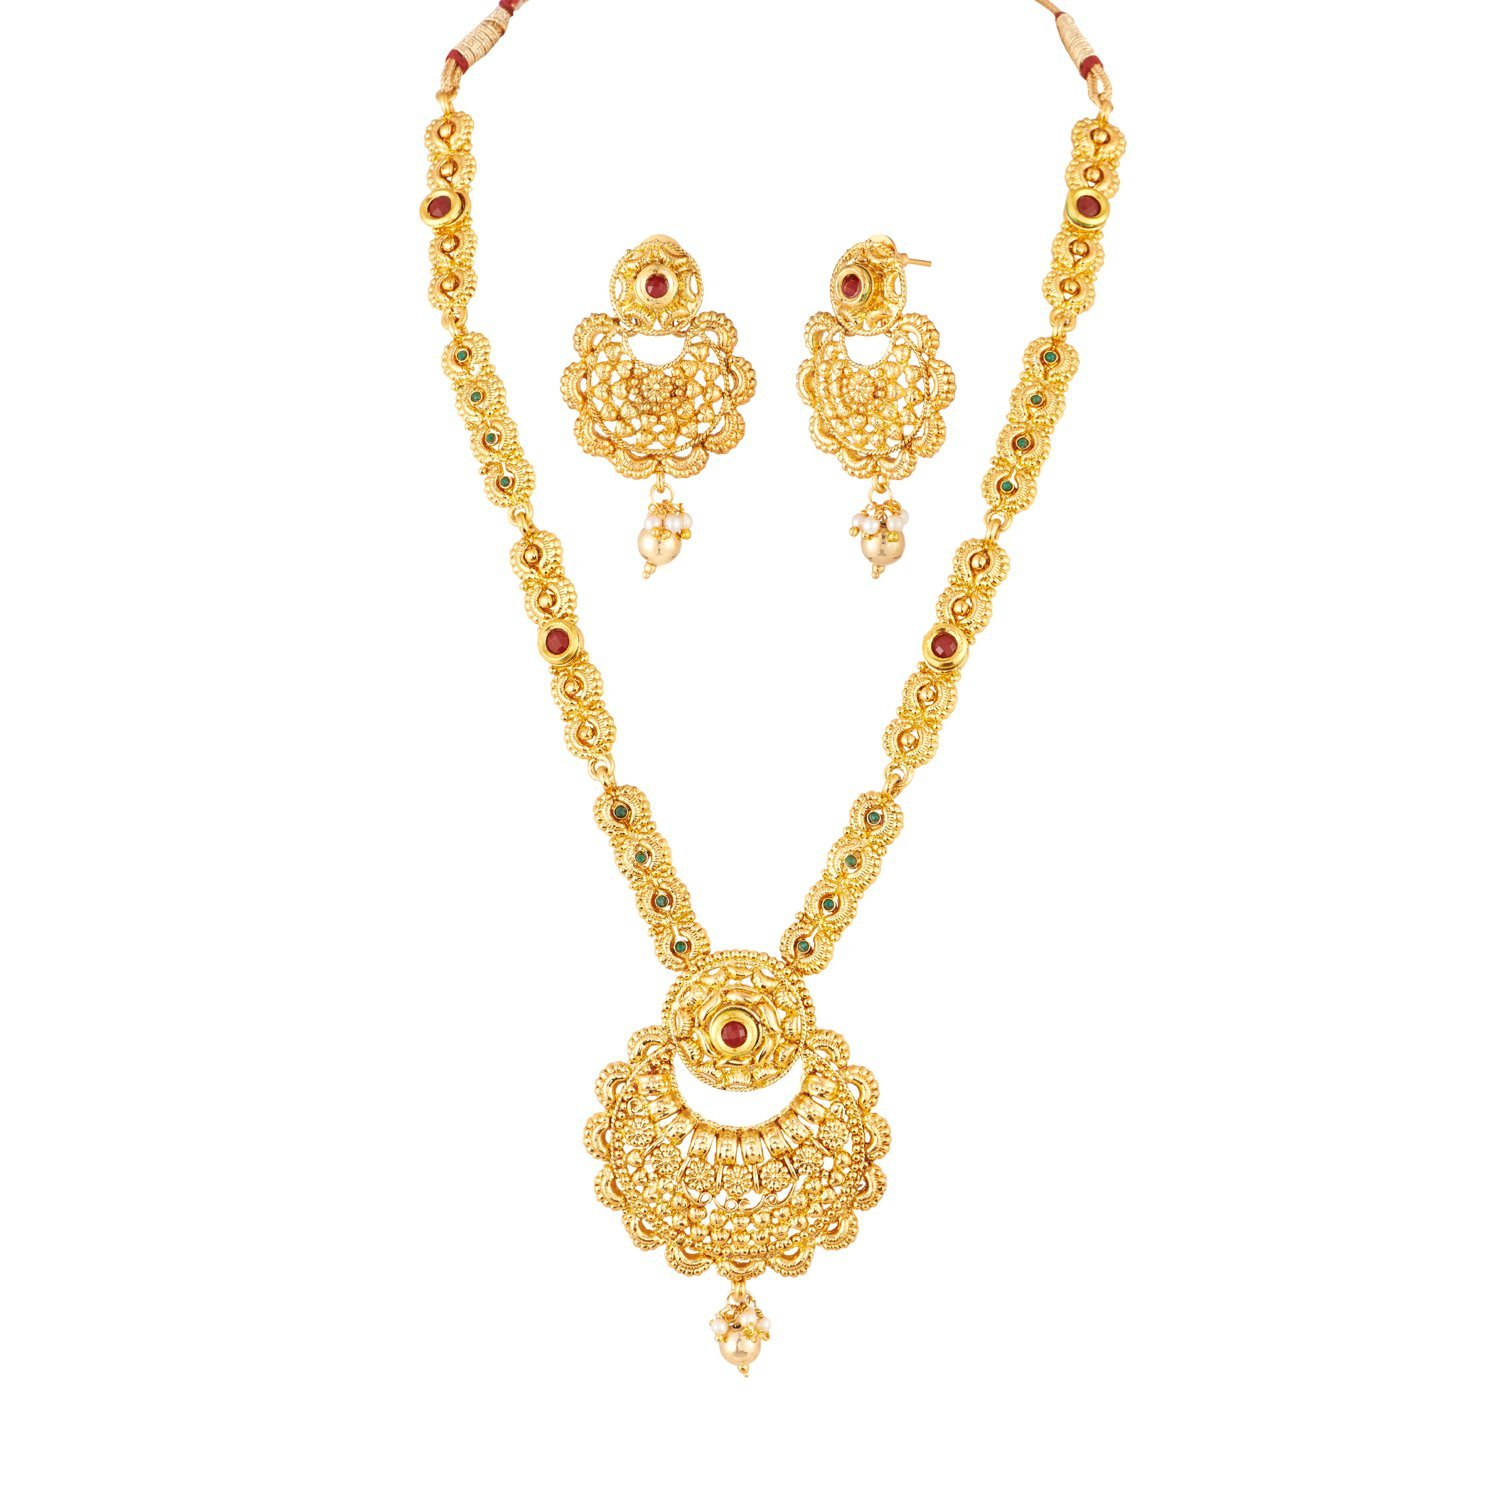 Buy Apara South Indian Long Necklace Set Jewellery For Women At